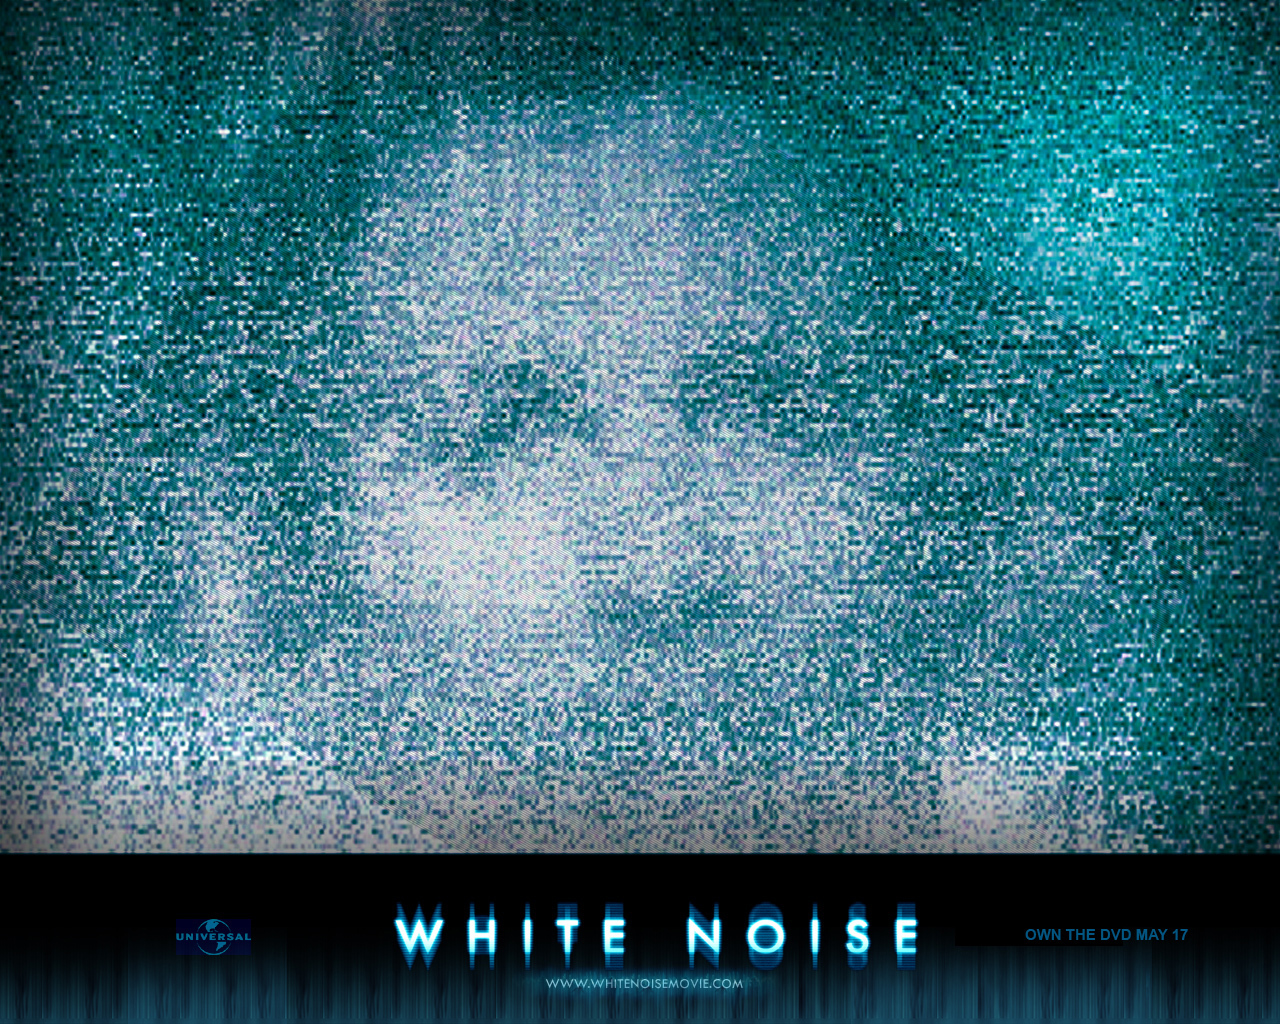 white noise Improve workspace acoustics with intelligent sound masking and acoustical panels that provide beauty, energy and privacy to your dynamic workspace.